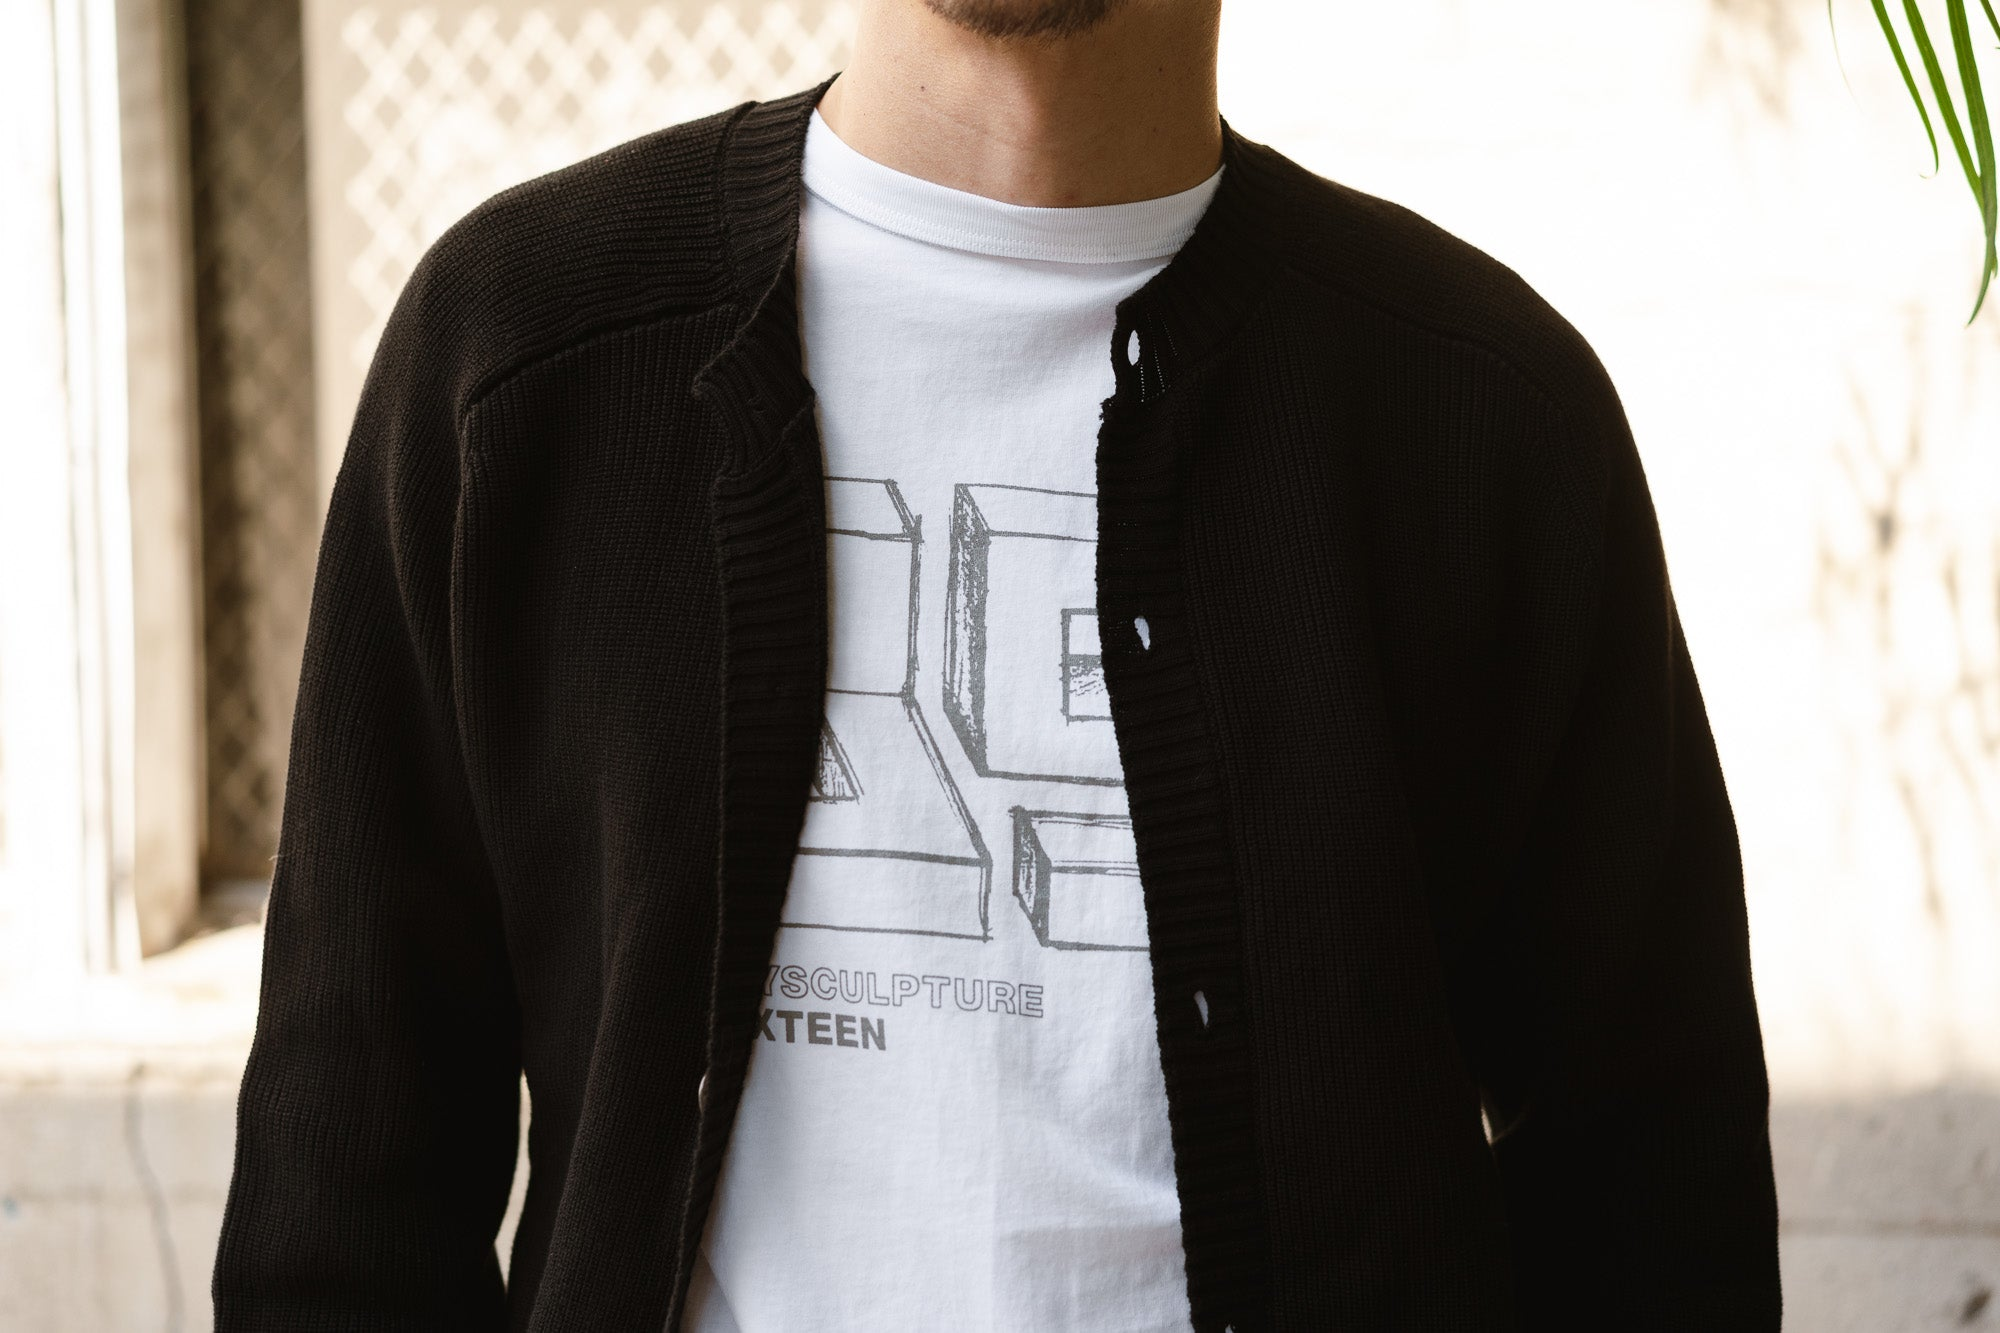 A man wears the Playscapes tee under a black cardigan.